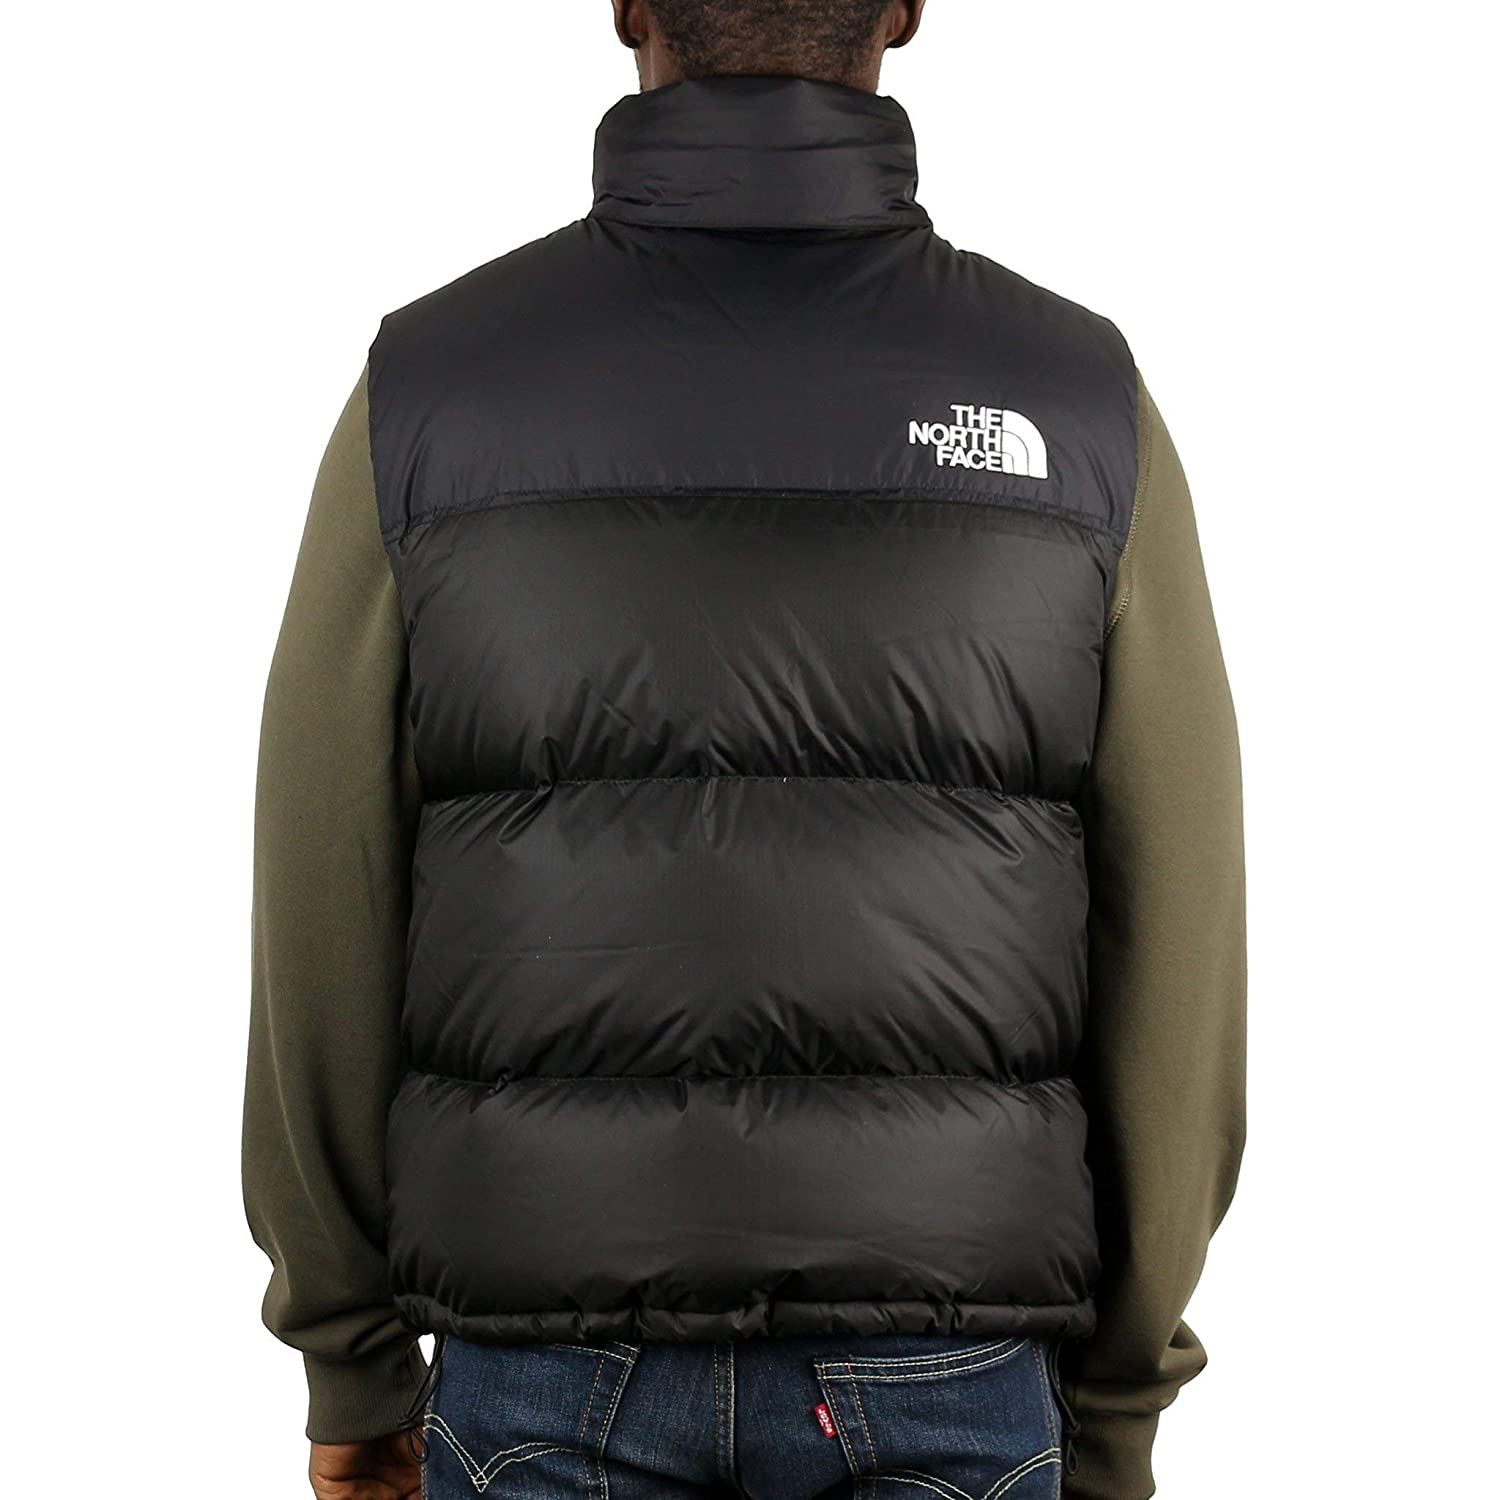 82a4d3d1b THE NORTH FACE Men's 1996 Retro Nuptse Gilet, Black